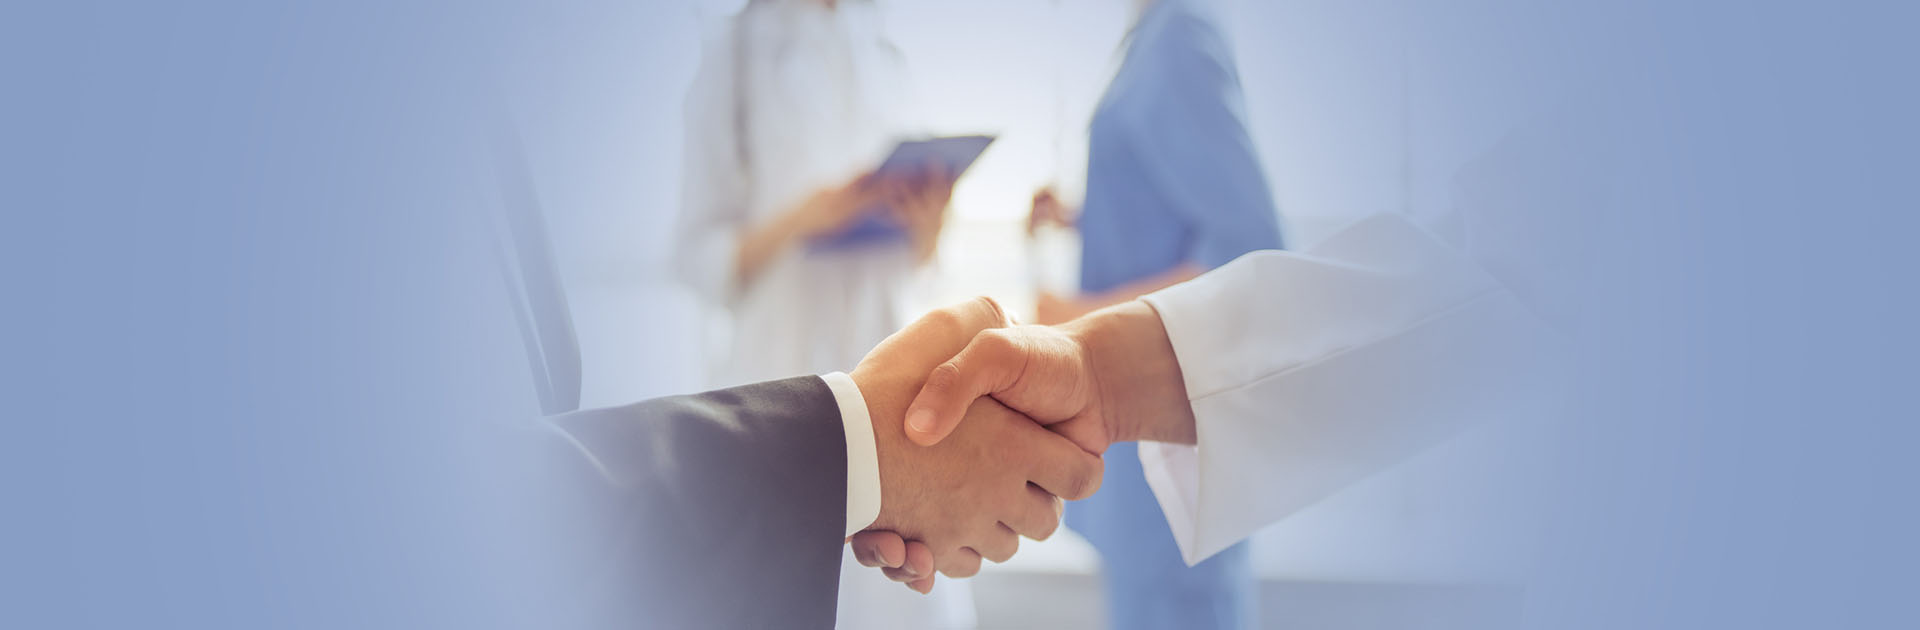 Man in suit shaking hands with man in white doctors uniform.